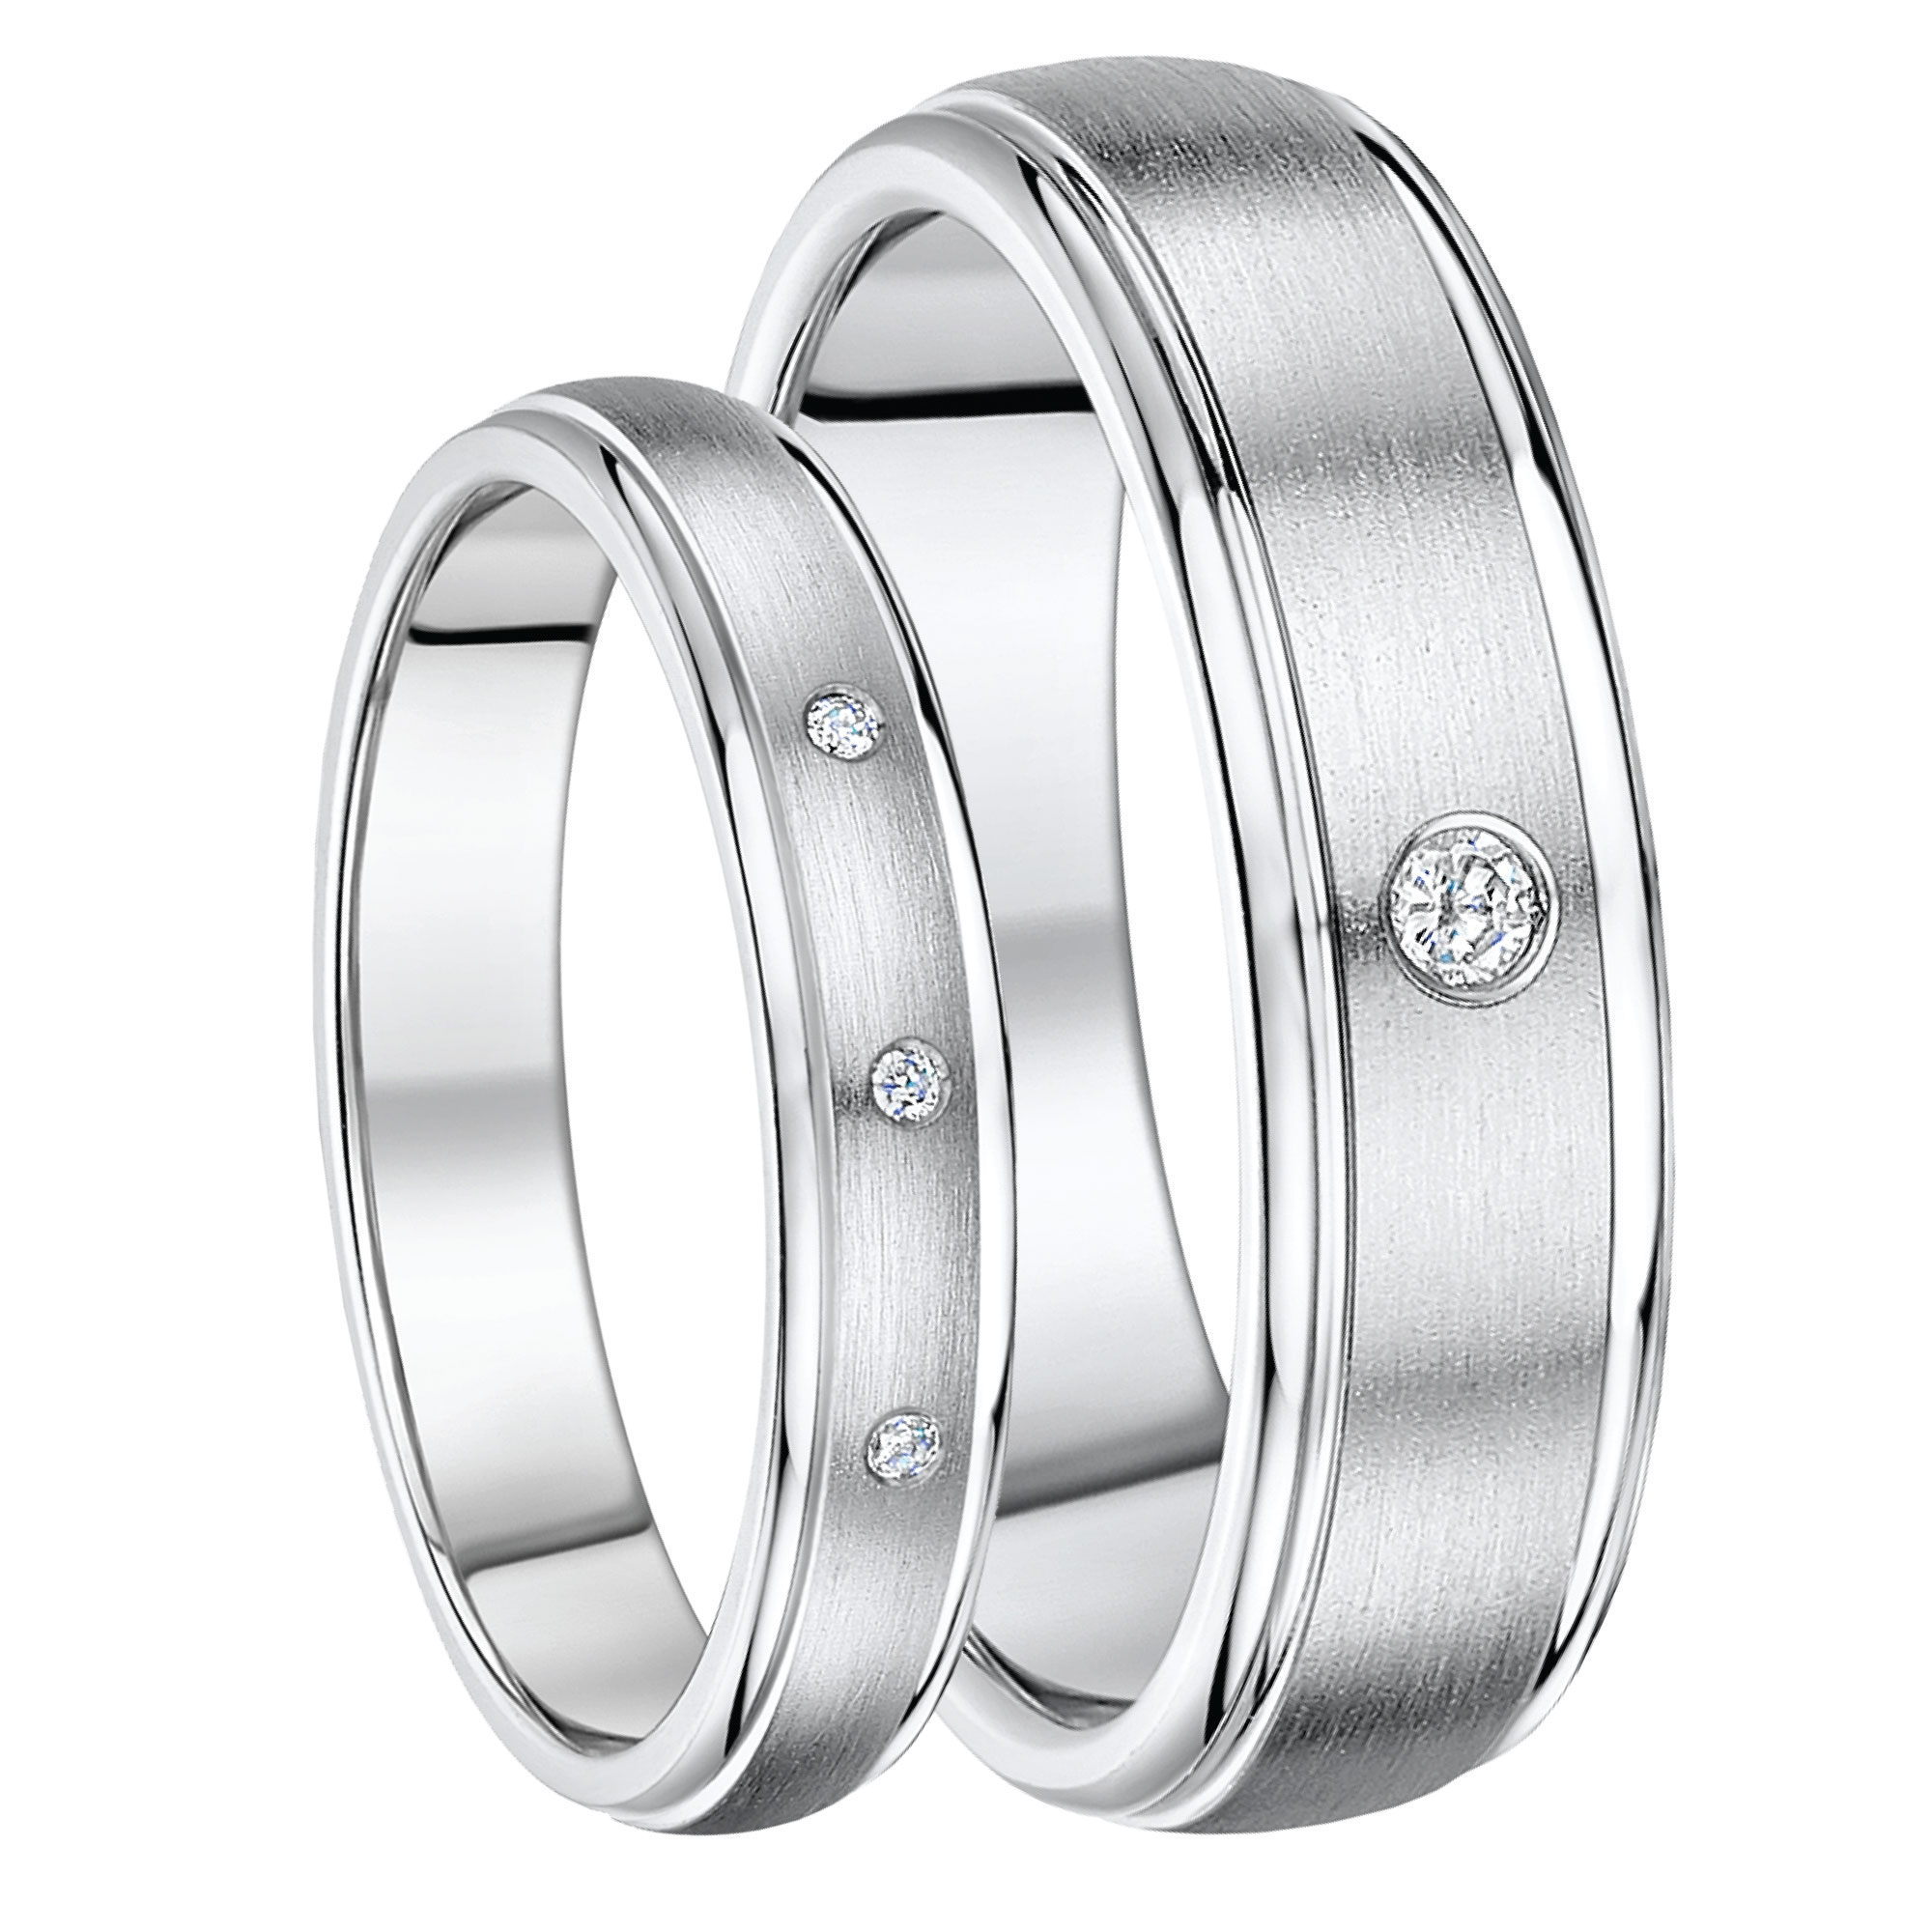 c and wedding palladium silver sterling engagement mens eternity titanium rings diamond